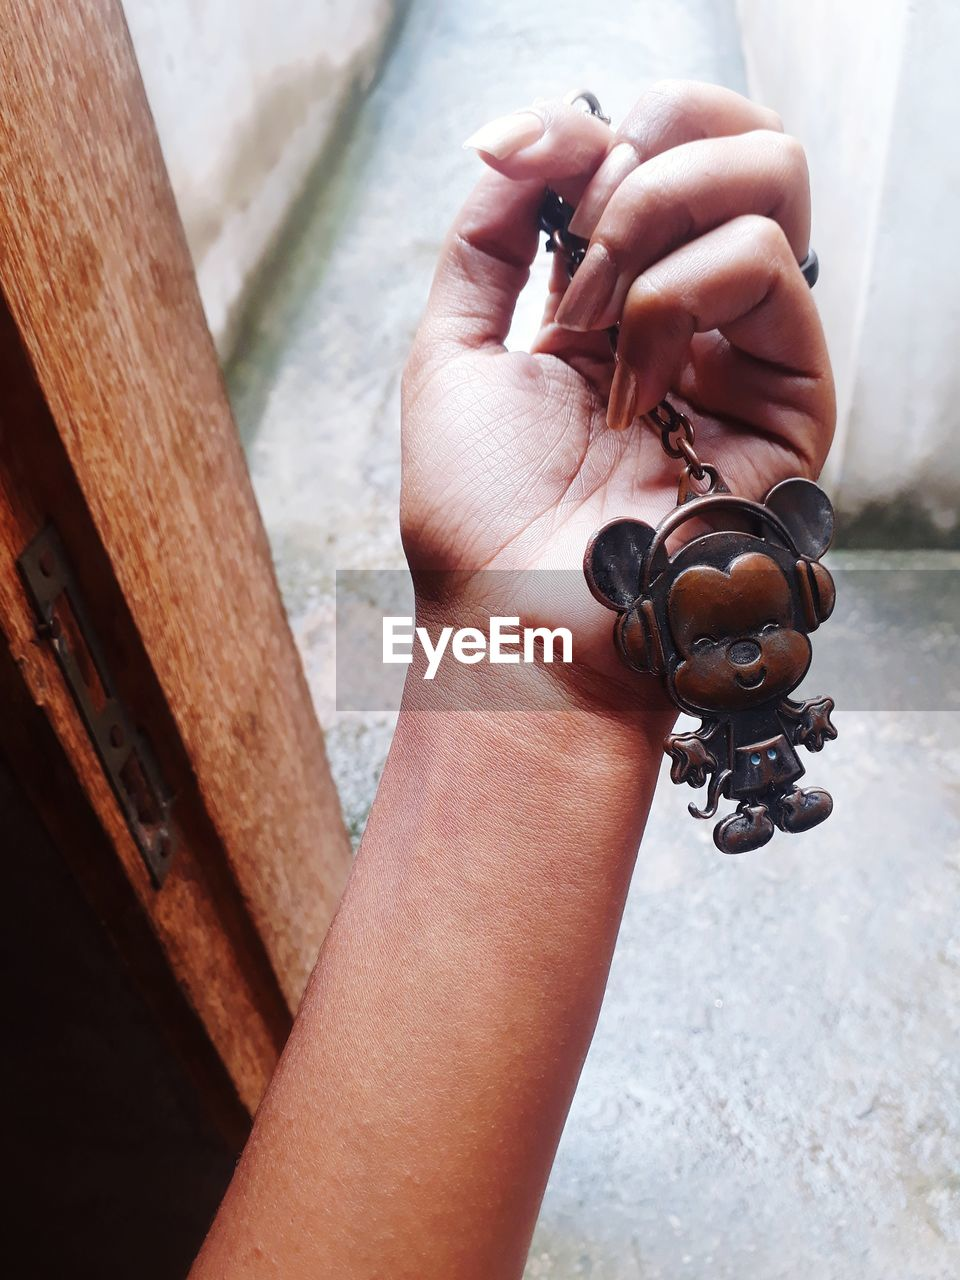 human hand, hand, holding, real people, one person, human body part, focus on foreground, high angle view, day, close-up, lifestyles, leisure activity, personal perspective, body part, outdoors, adult, metal, activity, unrecognizable person, finger